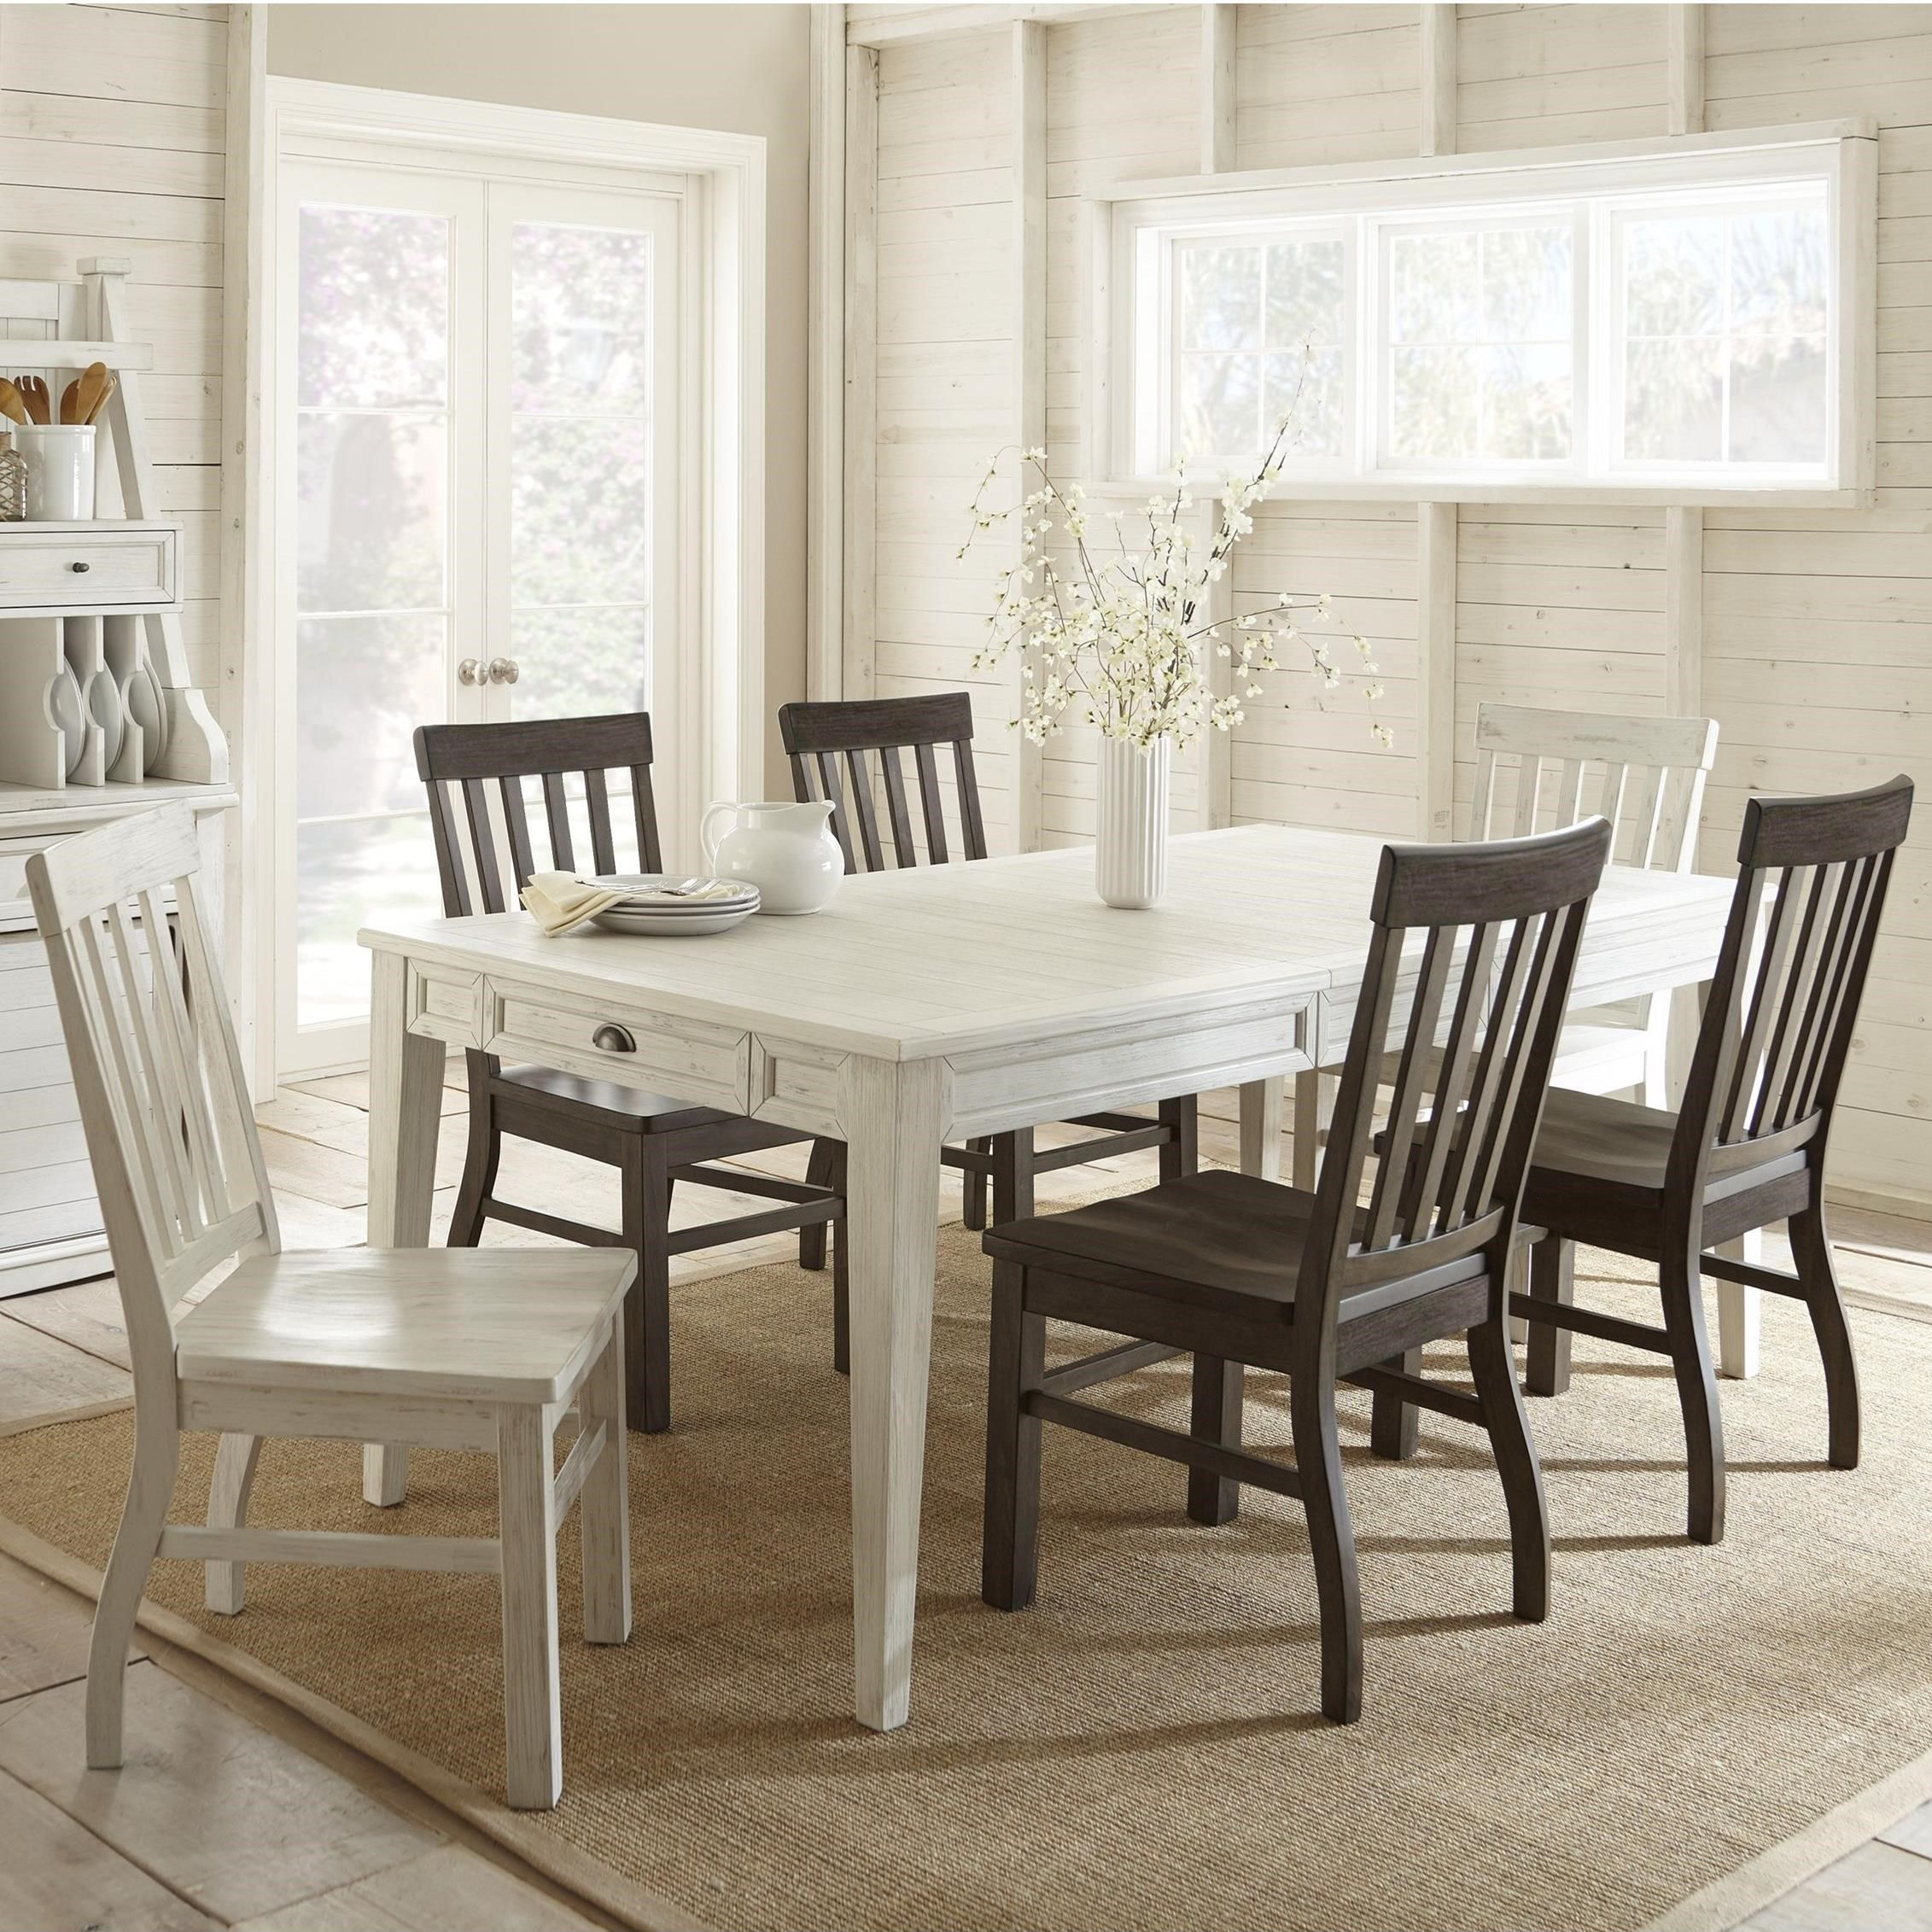 Cayla 7 Piece Dining Set By Steve Silver